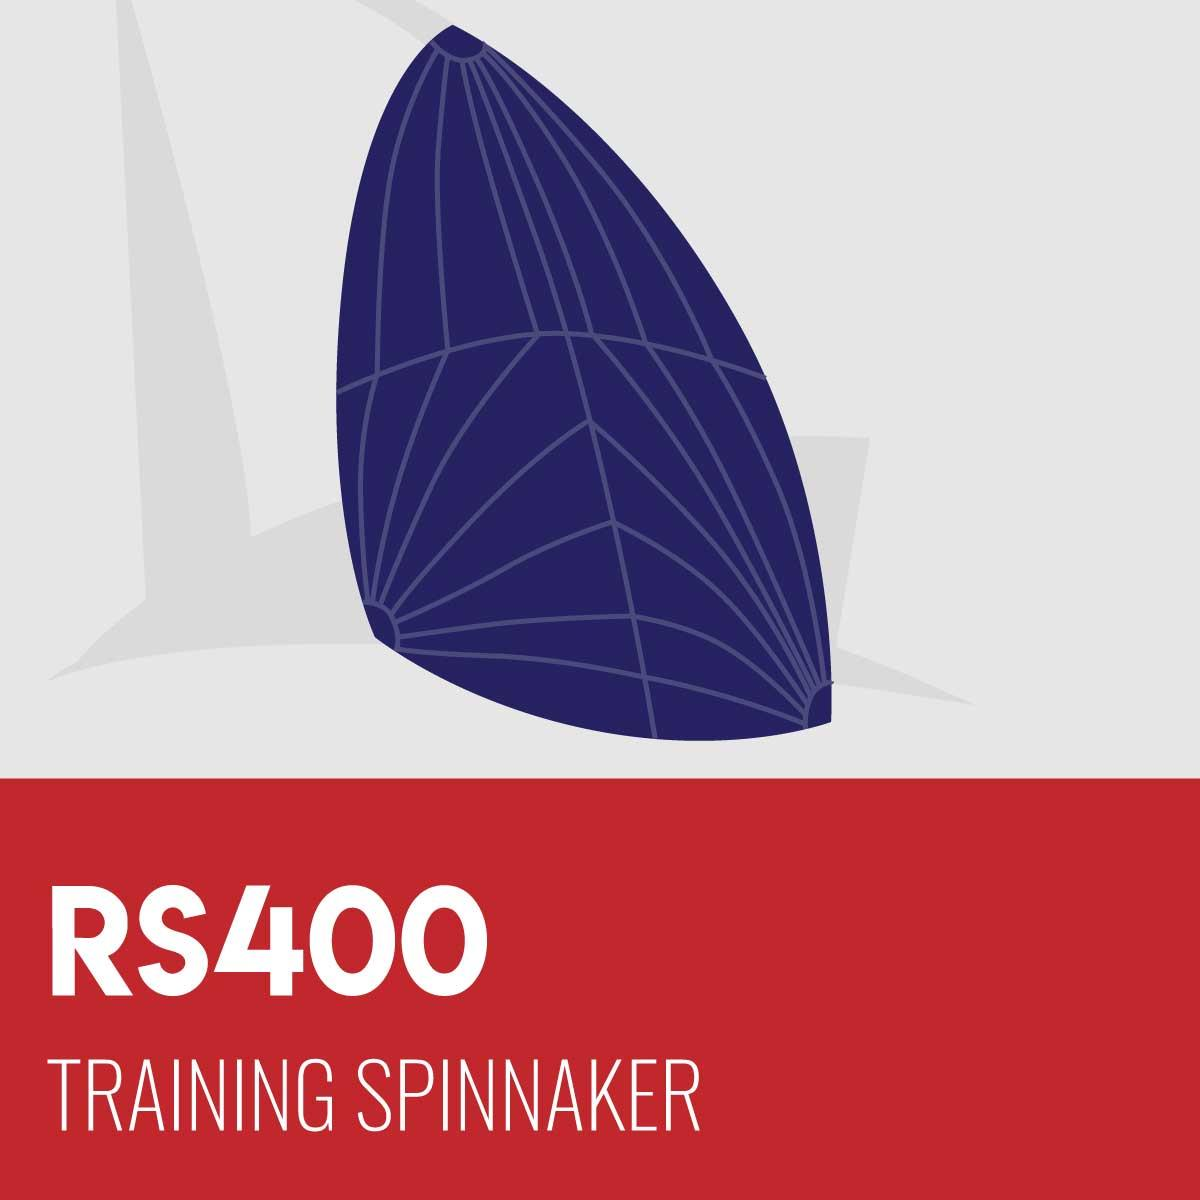 RS400 Training Spinnaker